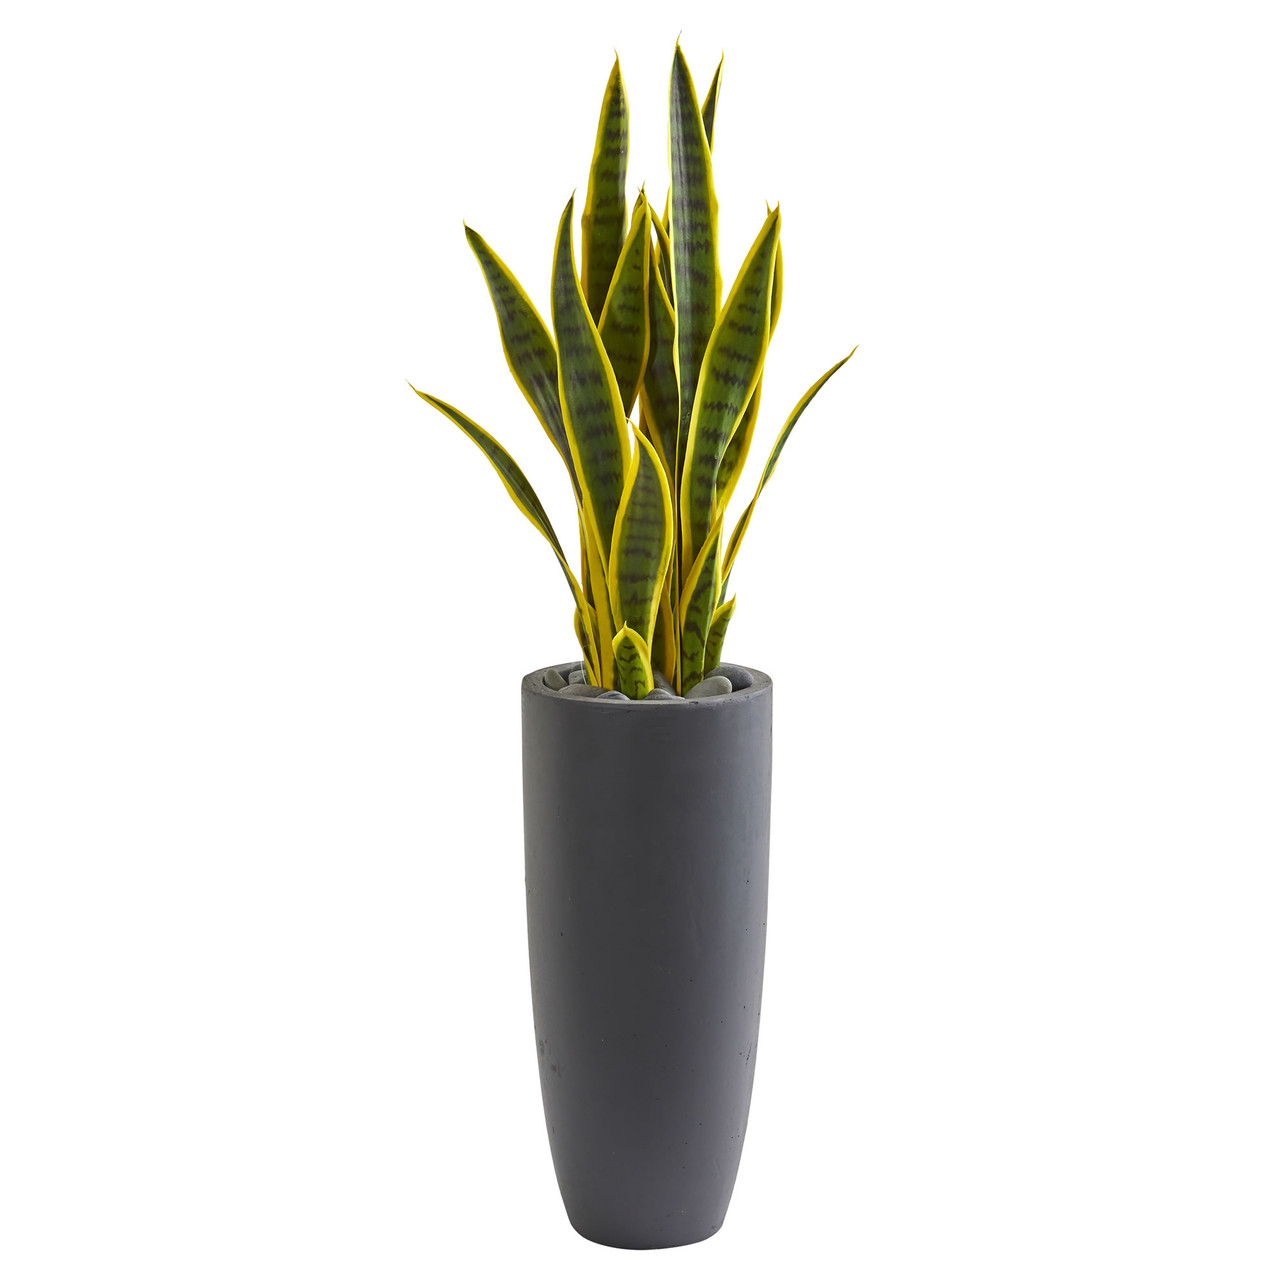 3 Ft Snake Plant Agave Sansevieria Artificial Plant In Gray Planter